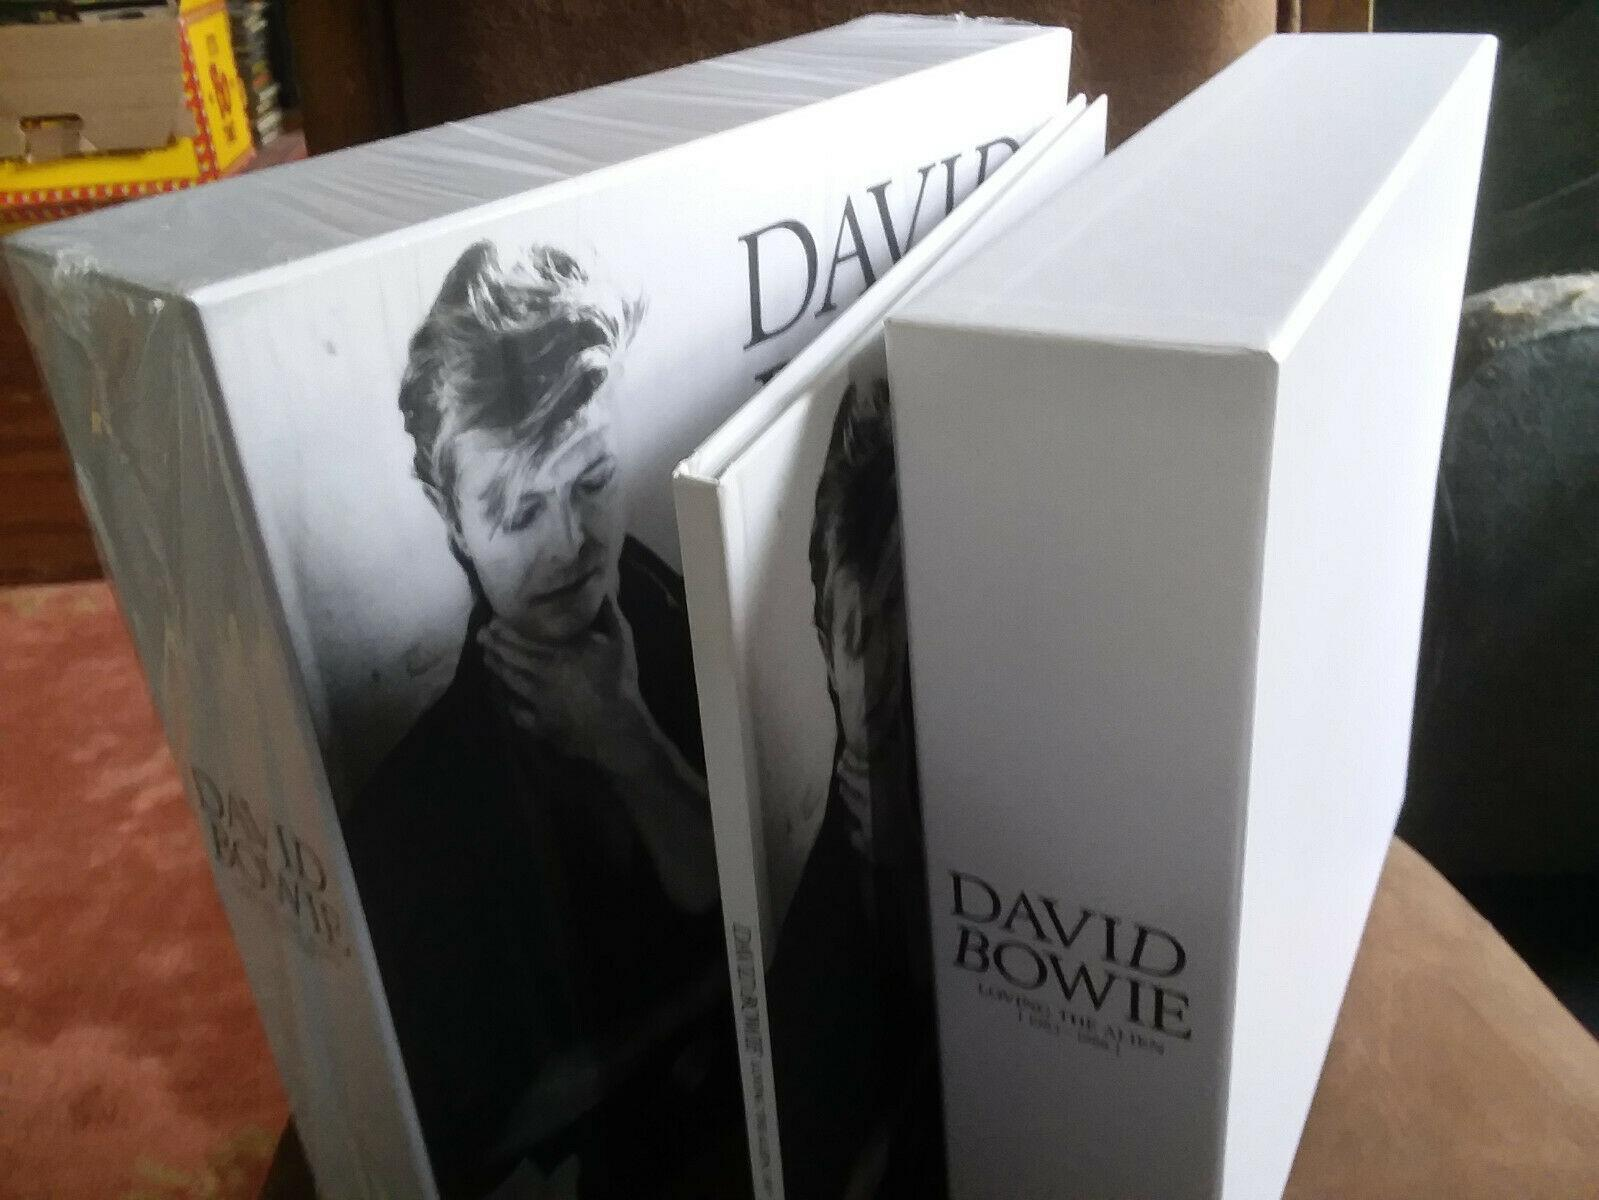 DAVID BOWIE - EMPTY BOX and BOOK ONLY from Vinyl LOVING THE ALIEN set No Albums